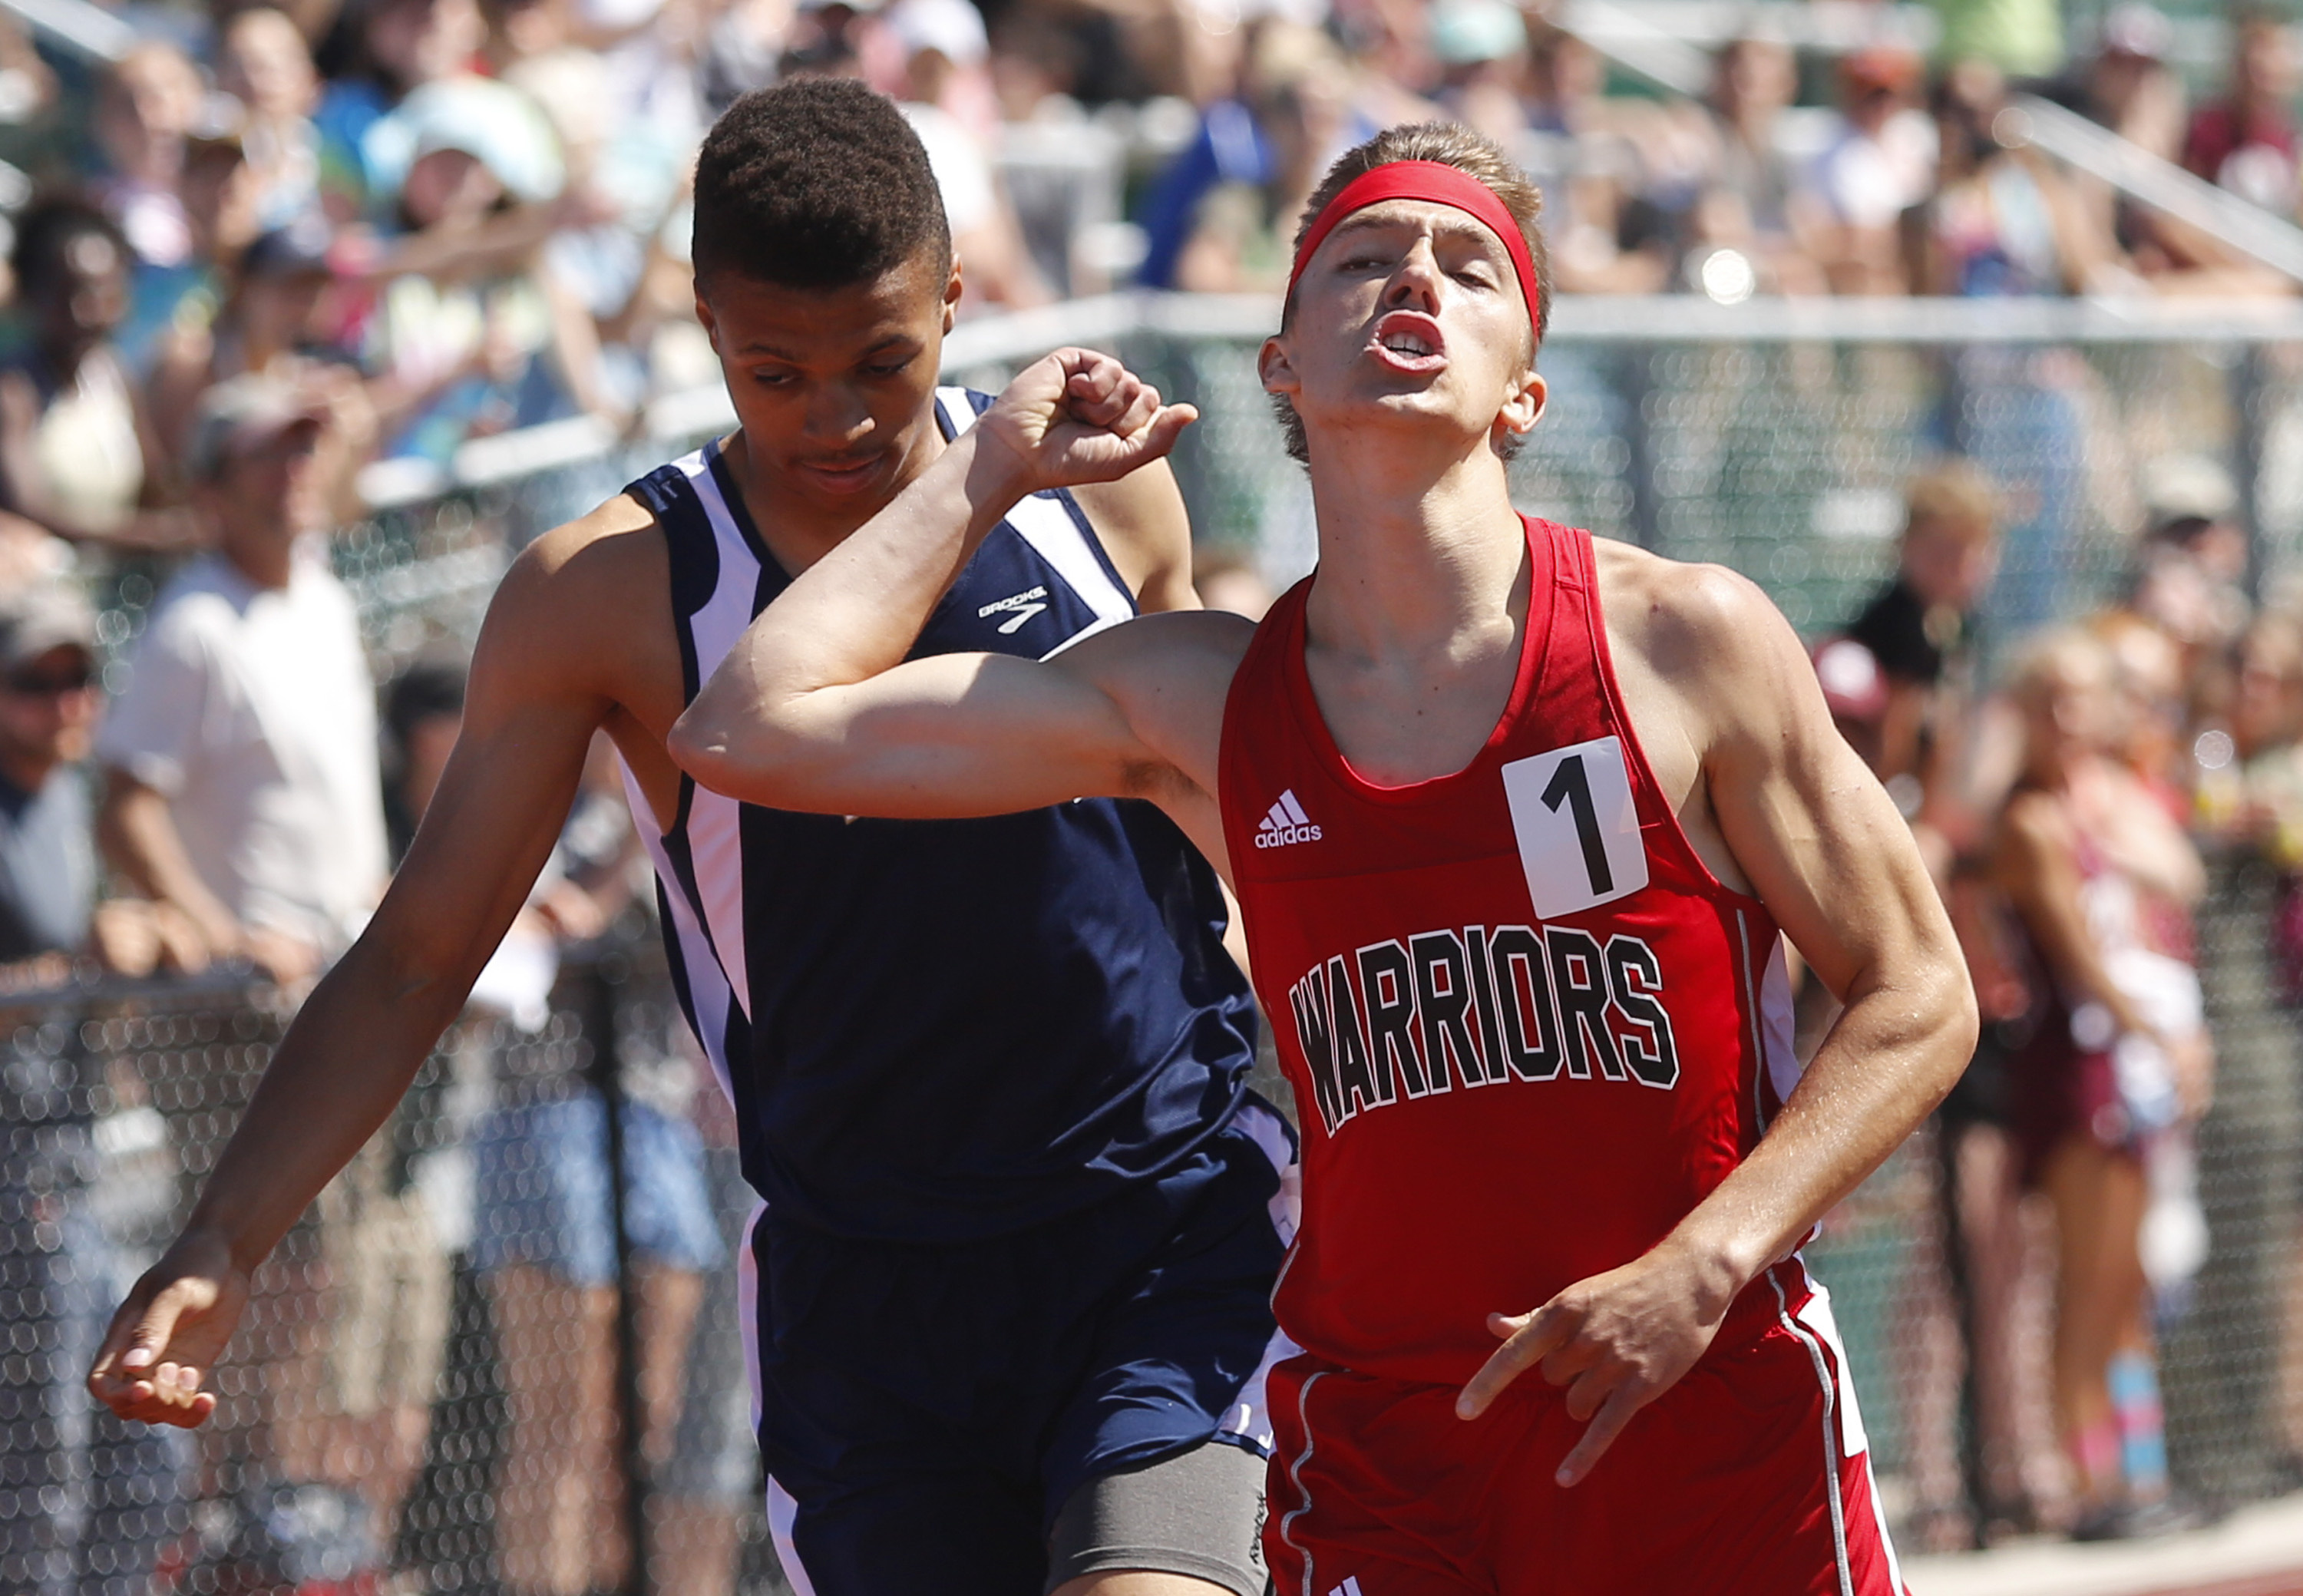 WATERBORO — The Maranacook girls and Caribou boys both withstood strong  challenges to win Saturday's Class C track and field team championships, ...